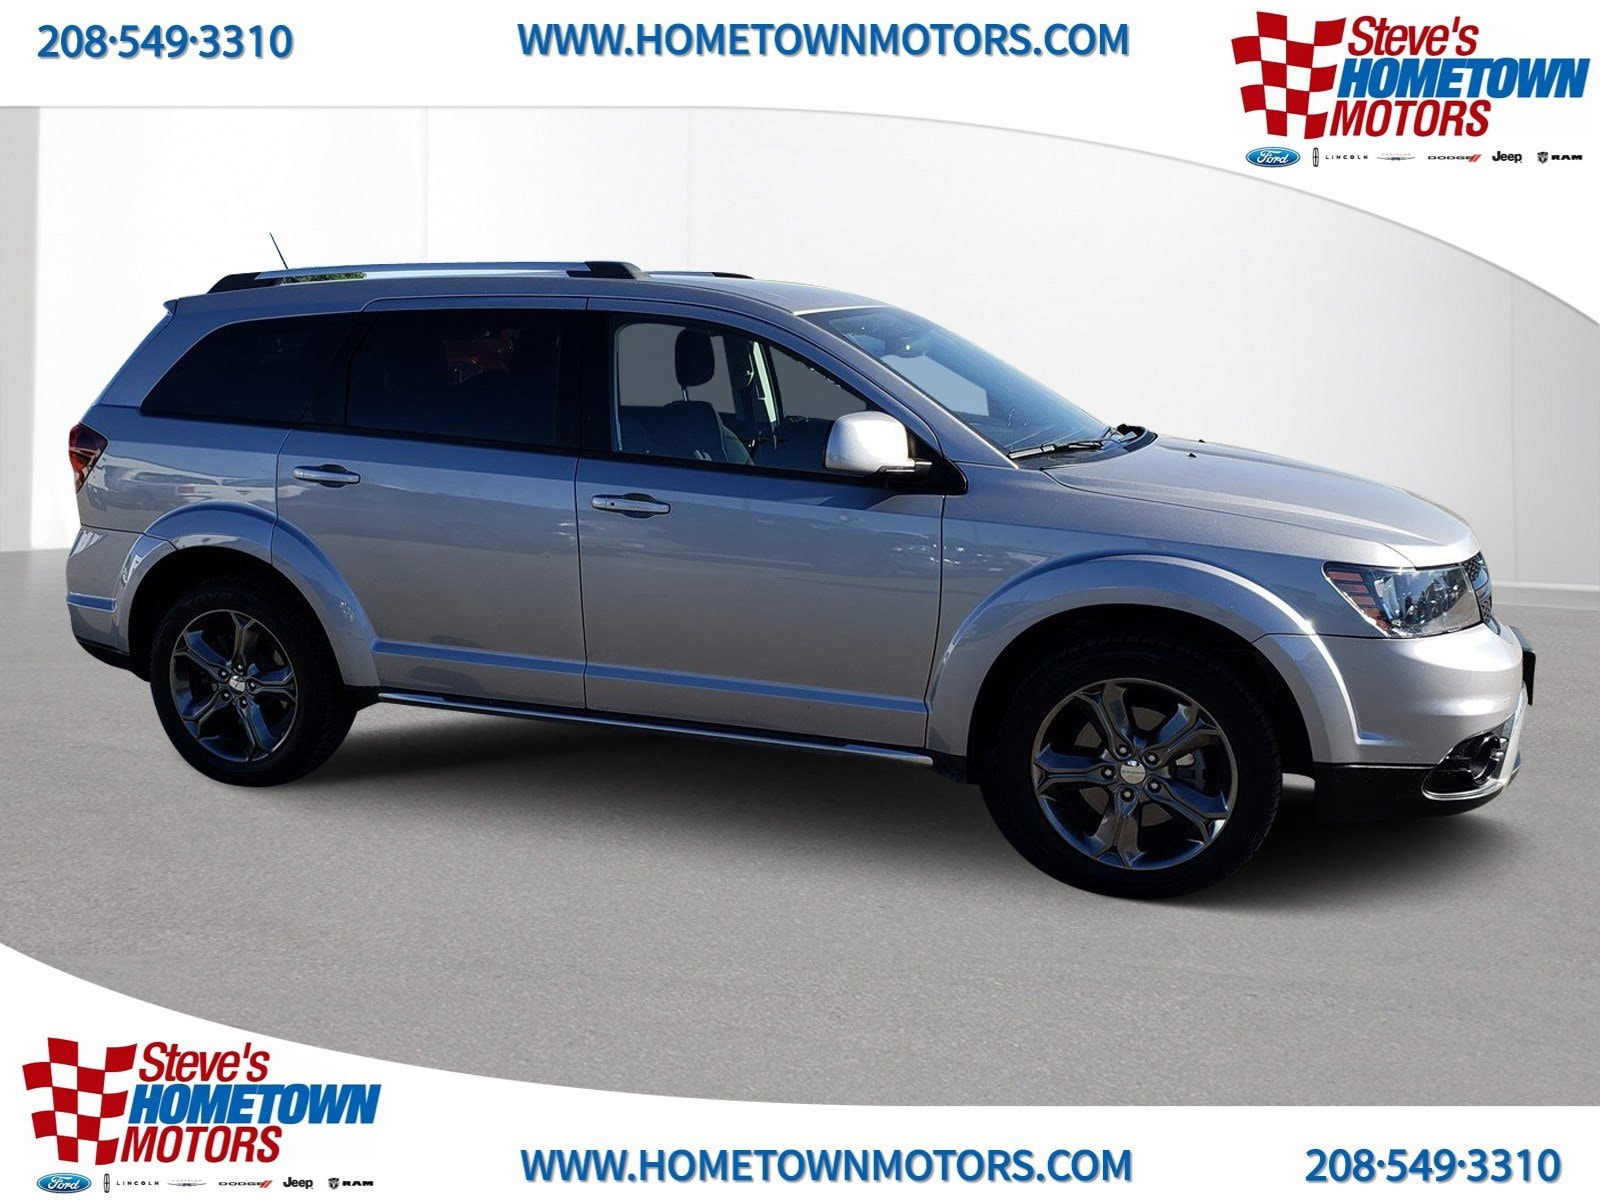 2016 Dodge Journey CROSSROAD PLUS FWD  Crossroad